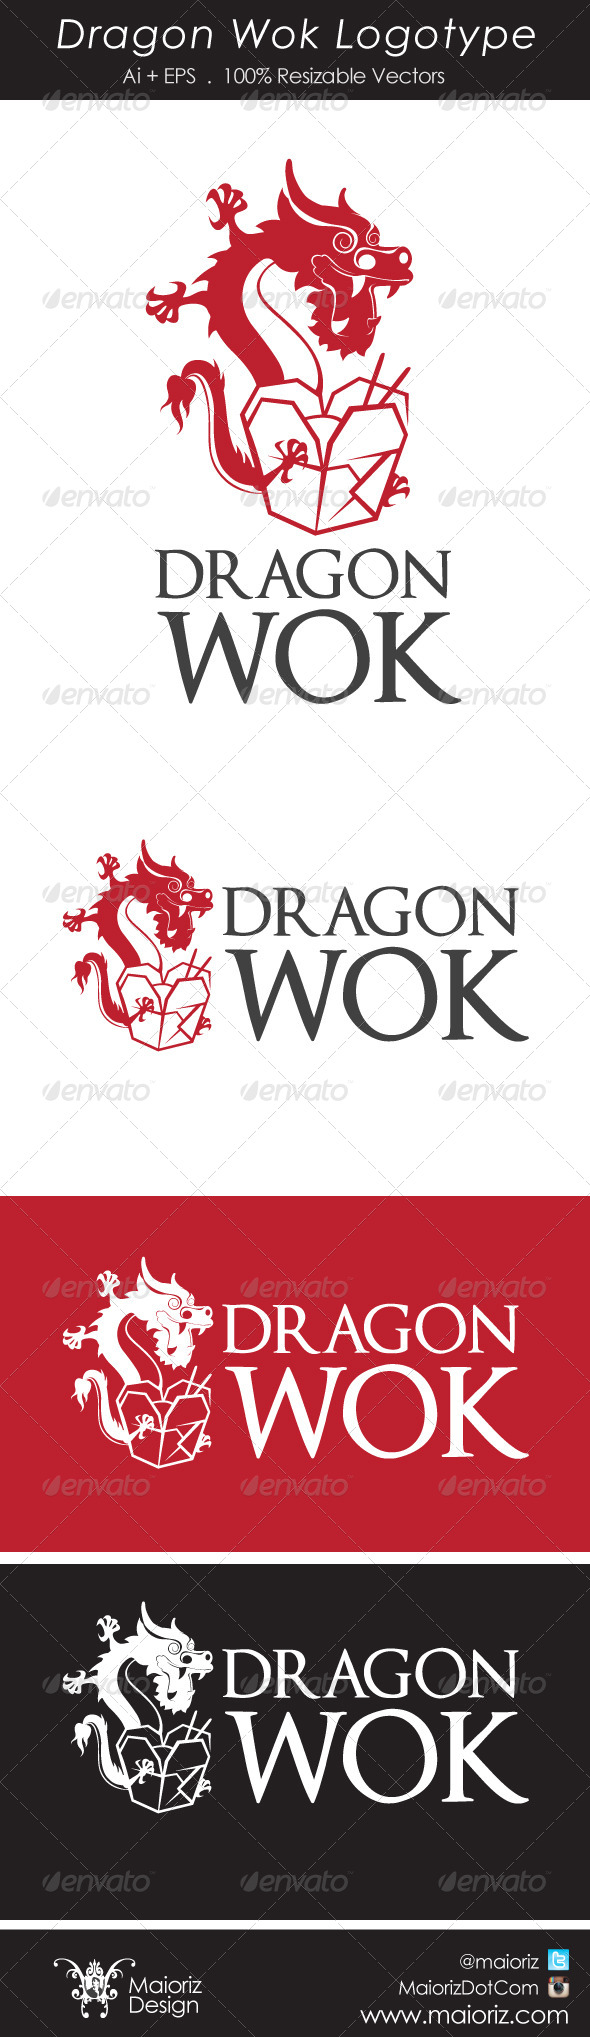 GraphicRiver Dragon Wok Logotype 5501414